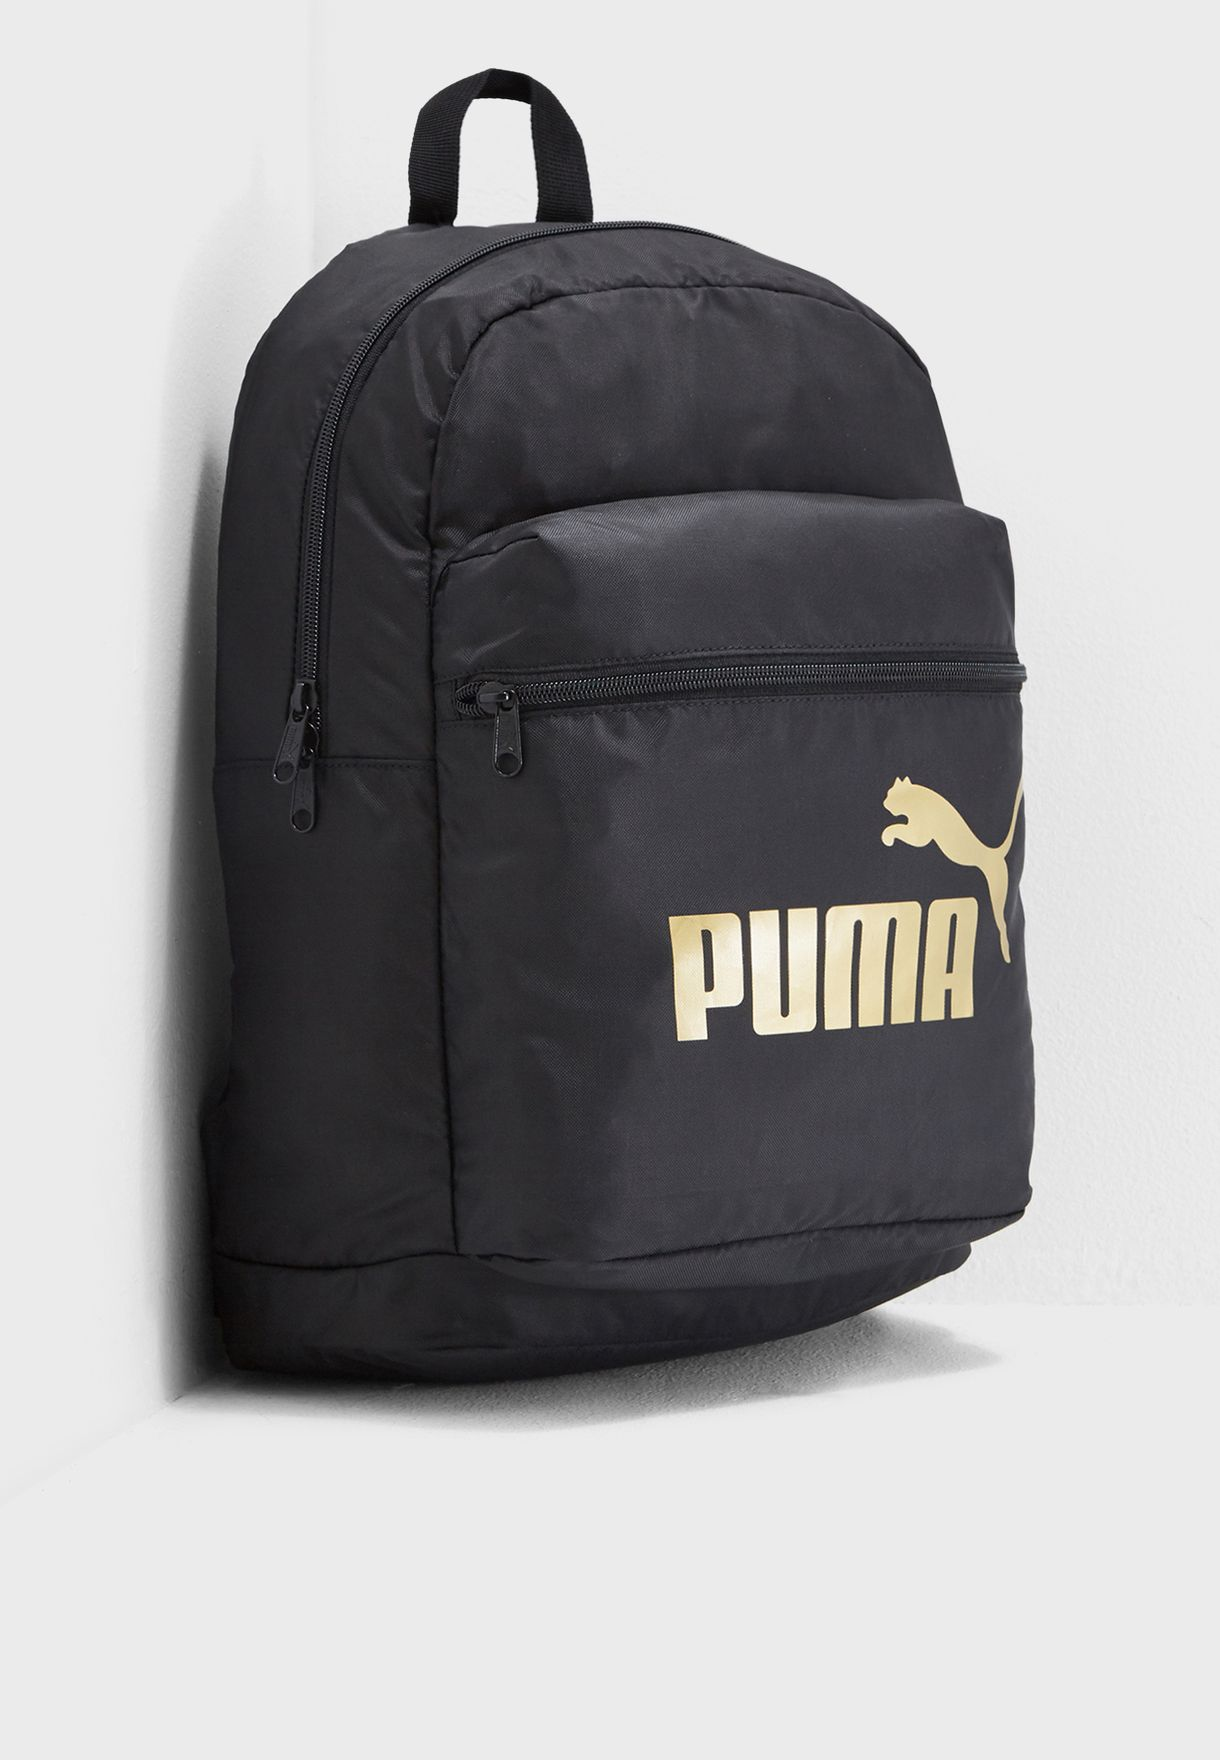 ecc88fc8715 Shop PUMA black Classic Backpack 7560413 for Women in Saudi ...